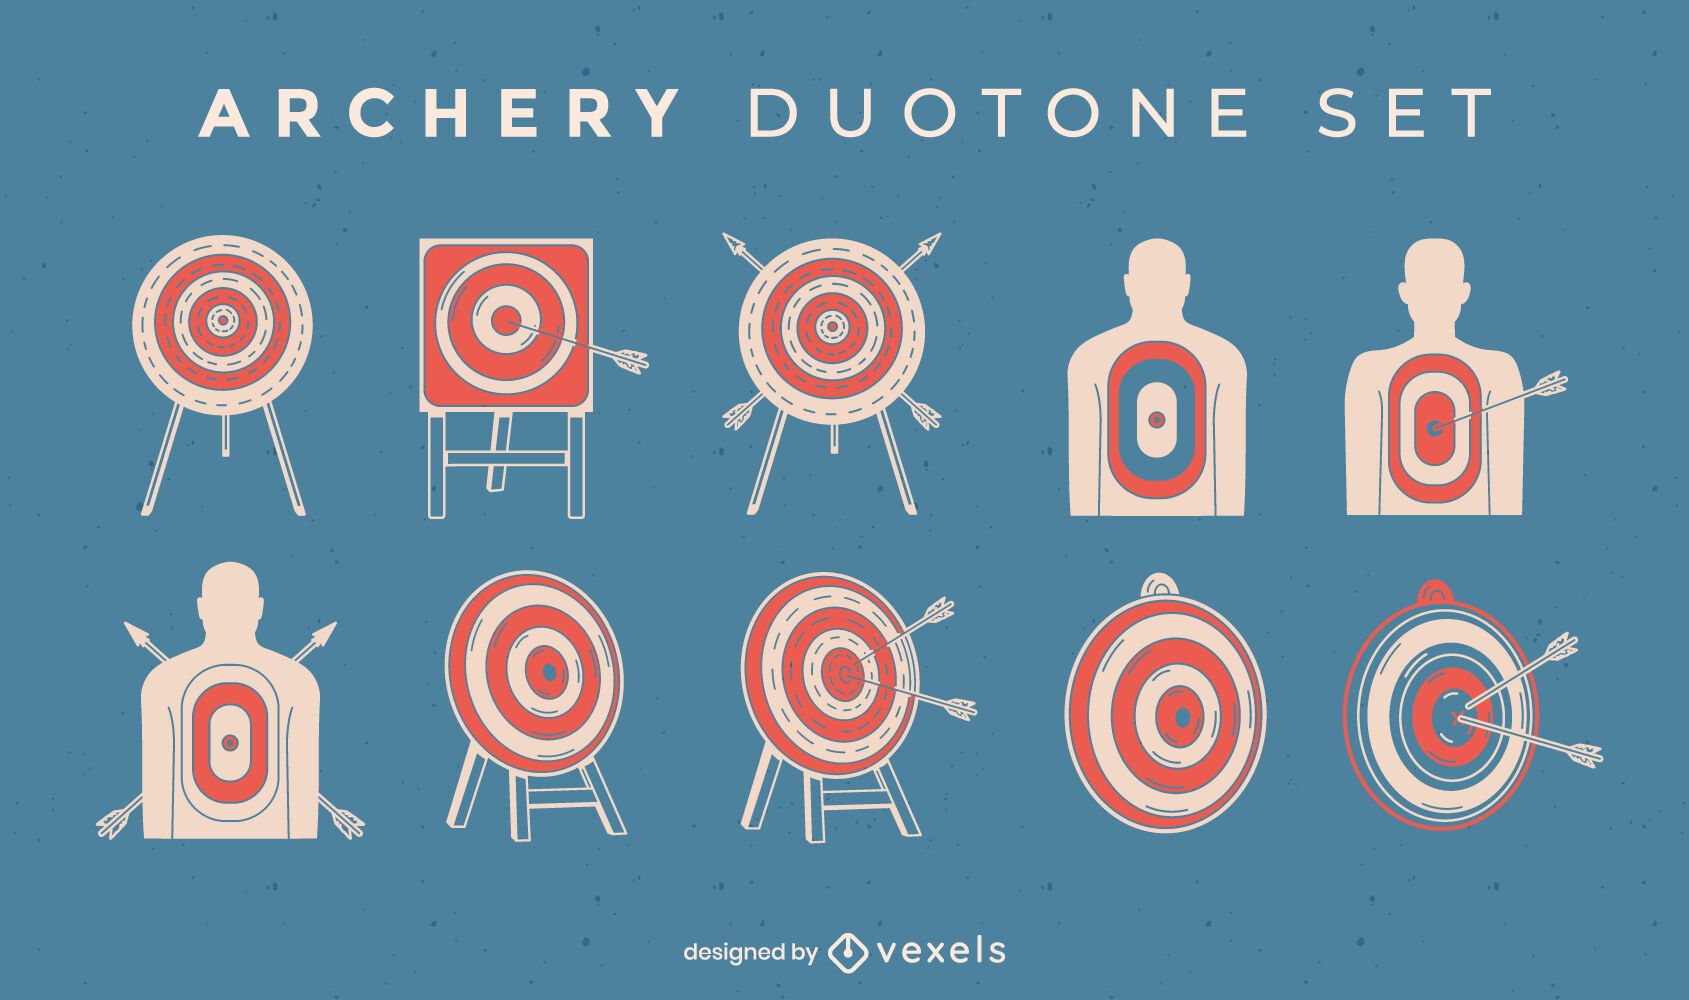 Archery targets and arrows duotone set